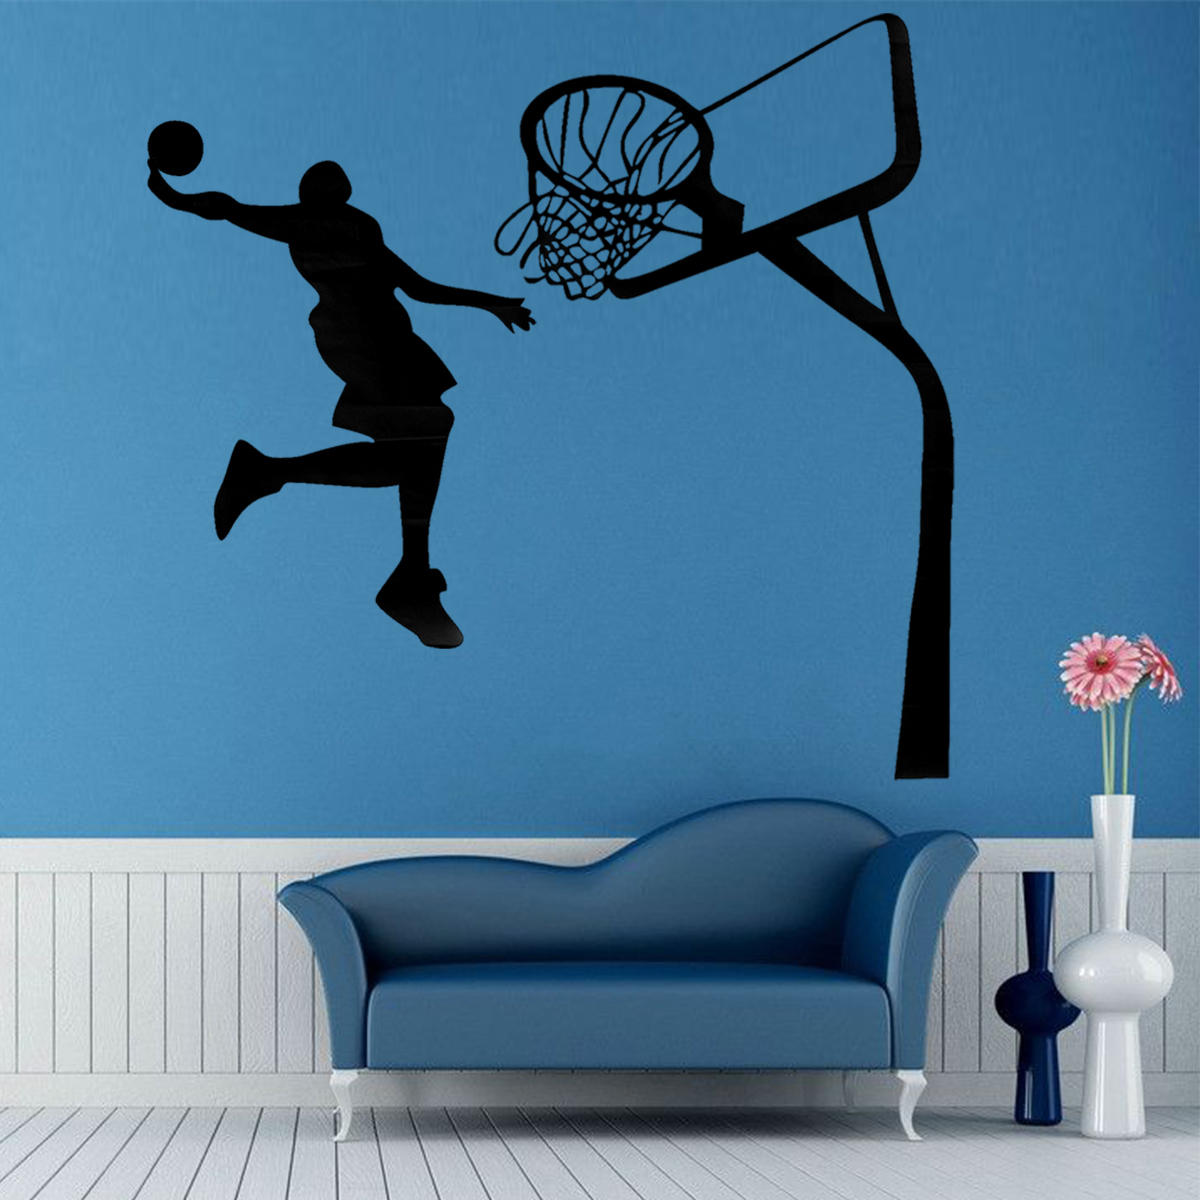 Removable Basketball Dunk Sport DIY Wall Sticker Kids Room Art Decor Decals from Banggood